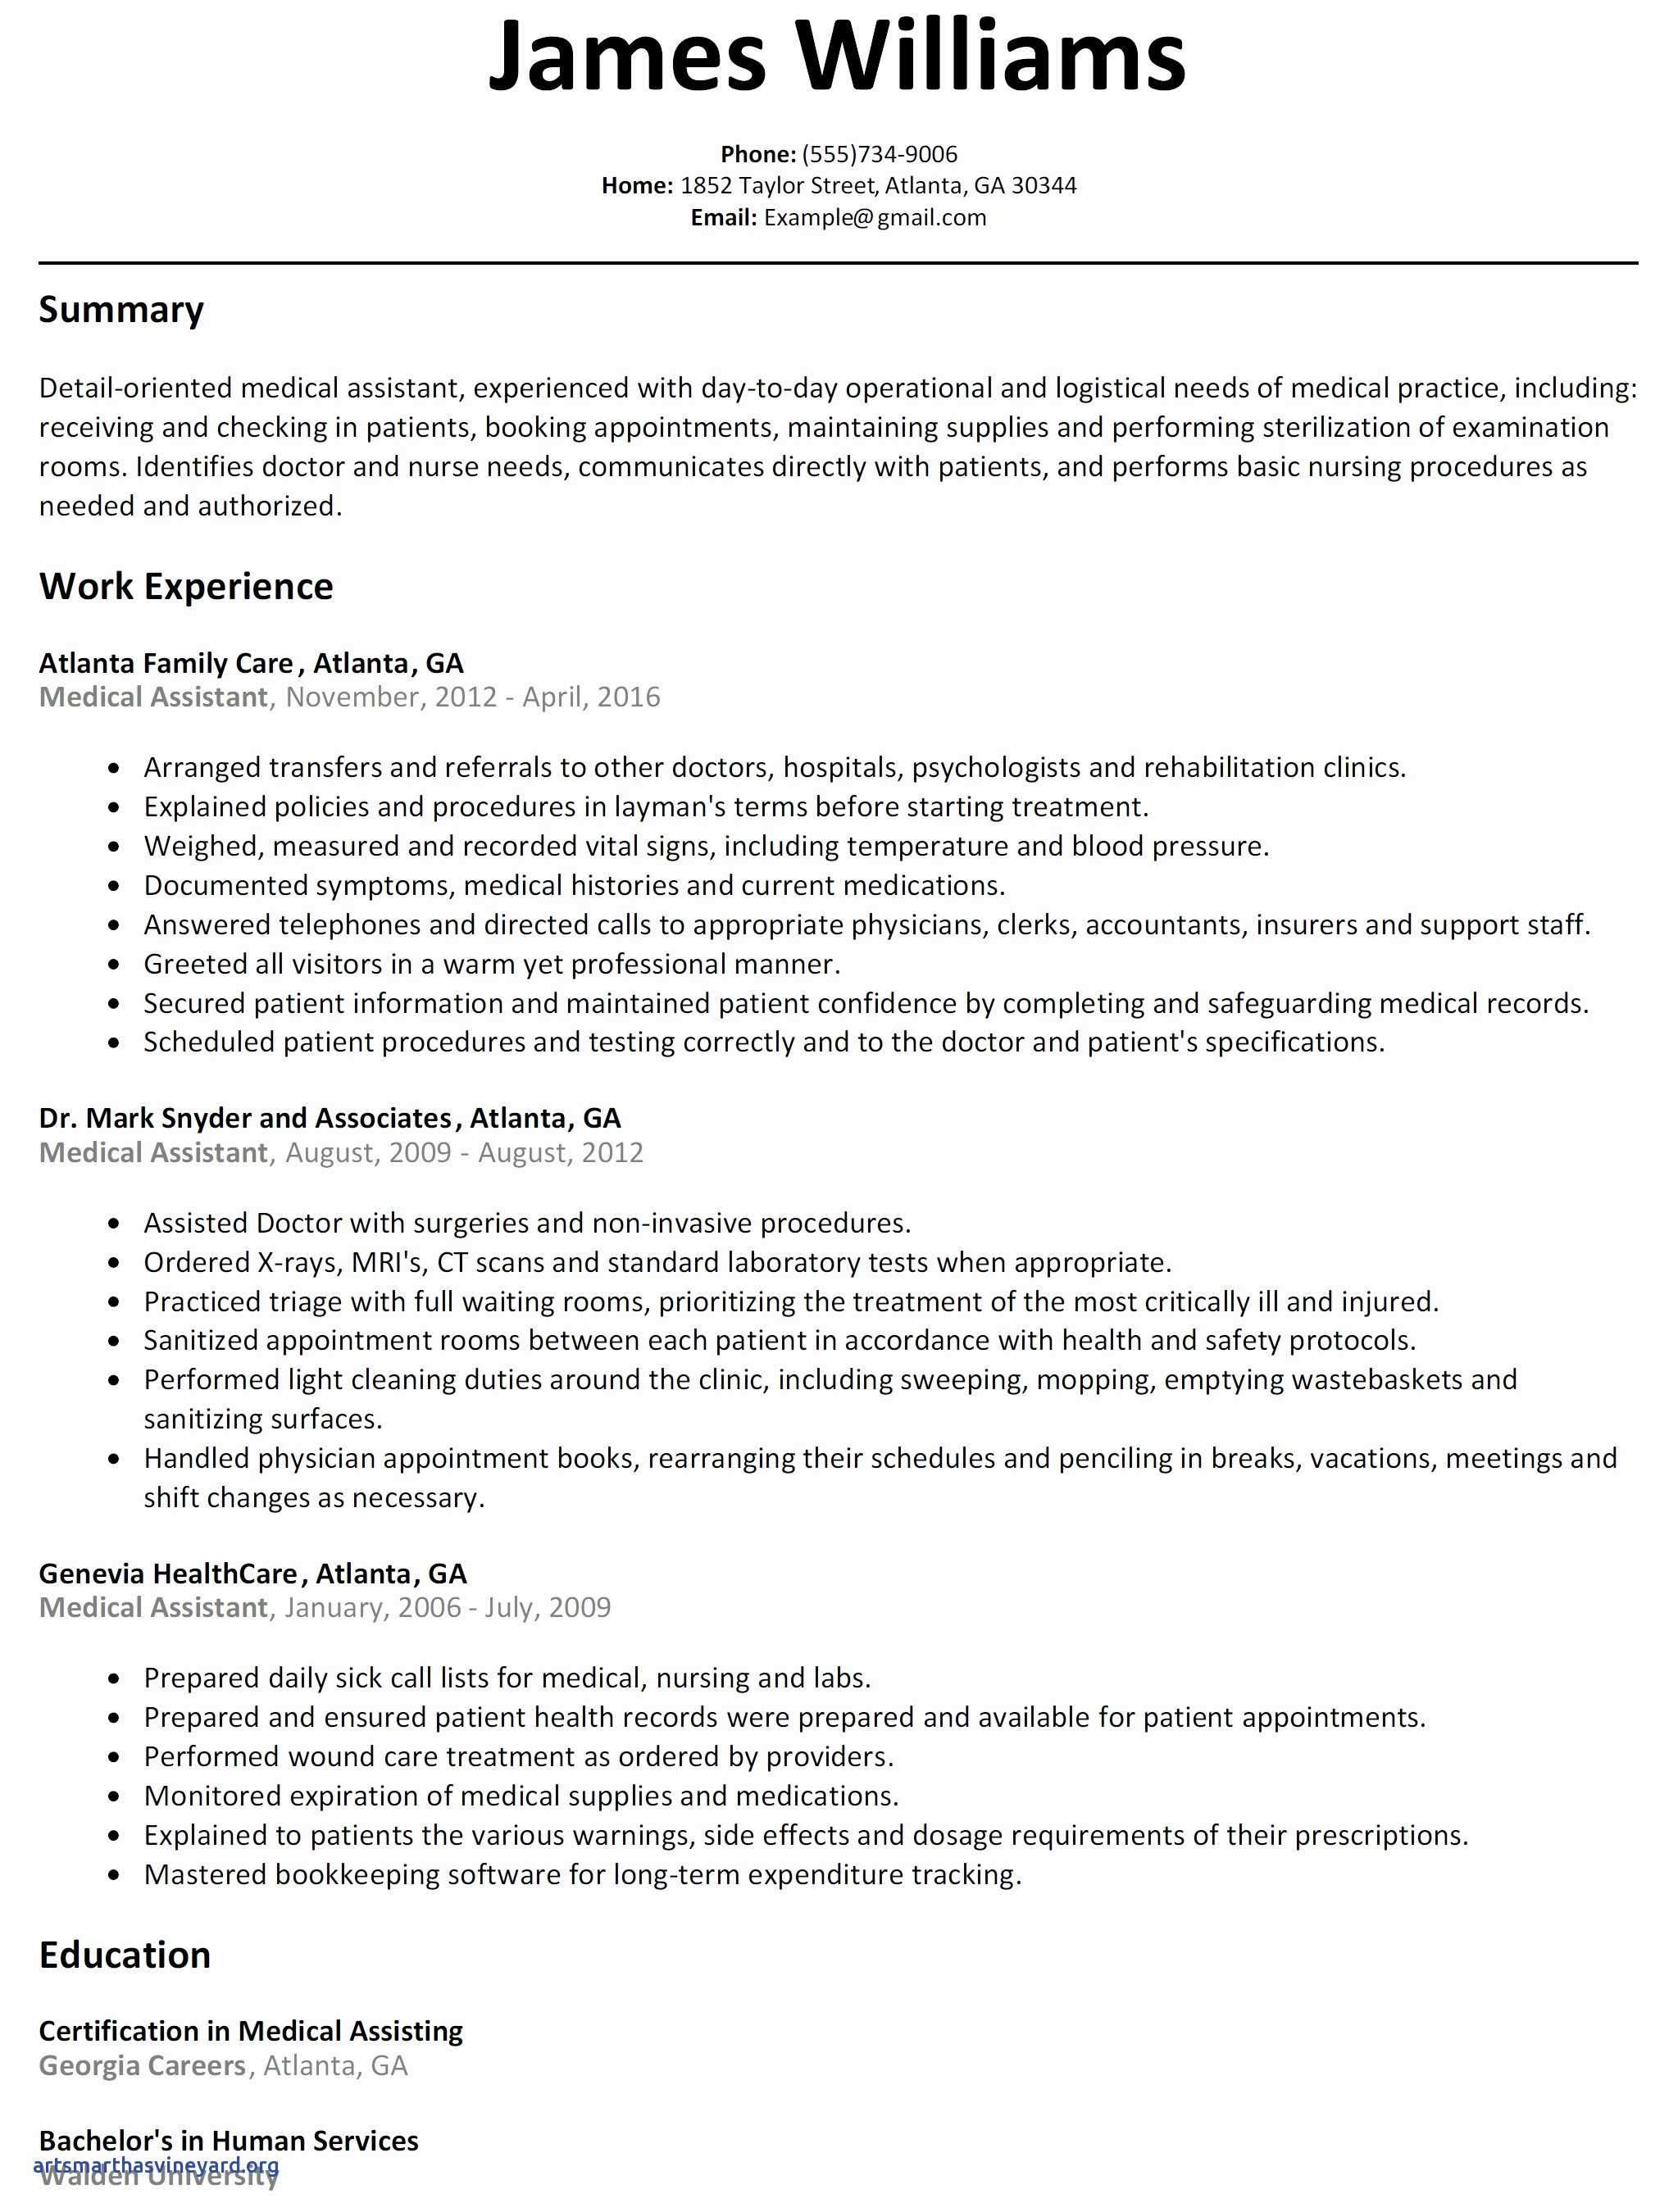 retail store manager resume template Collection-Retail Store Manager Resume Sample Unique Retail Resume Sample Awesome Resume Template Free Word New Od 9-e